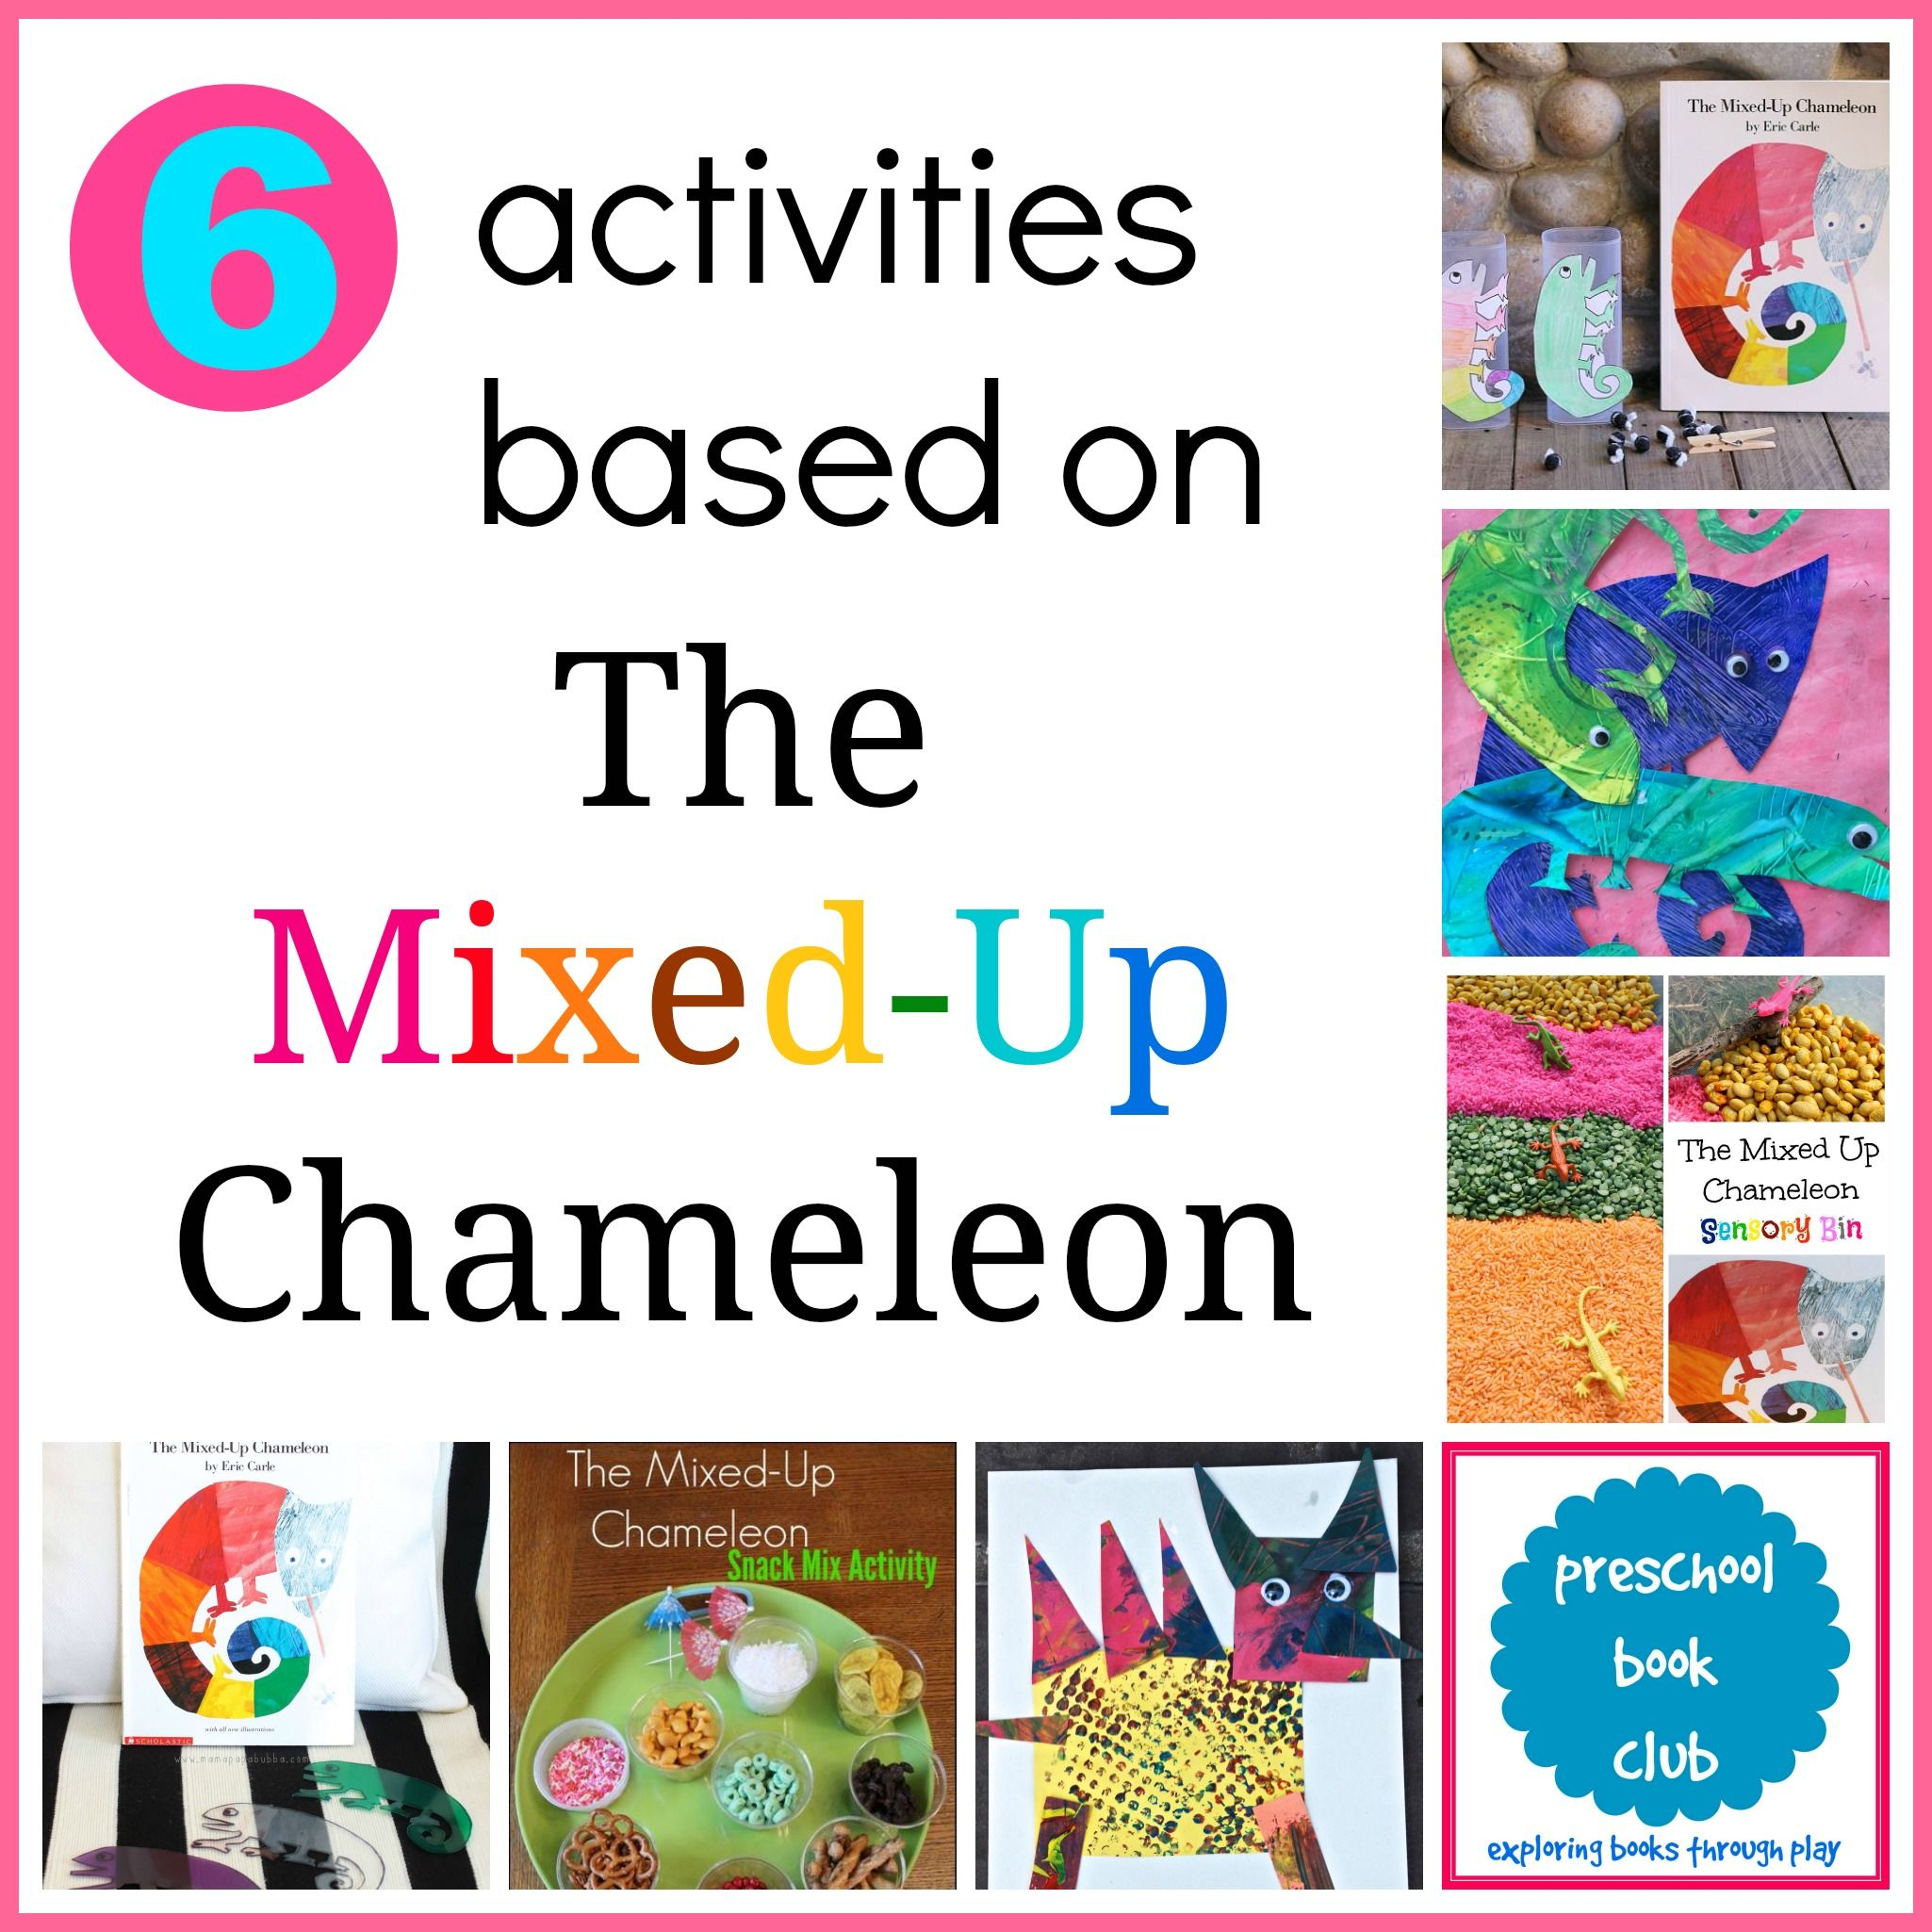 Adult Best The Mixed Up Chameleon Coloring Page Images beauty the mixed up chameleon coloring page jamesenye 1000 images about on pinterest images